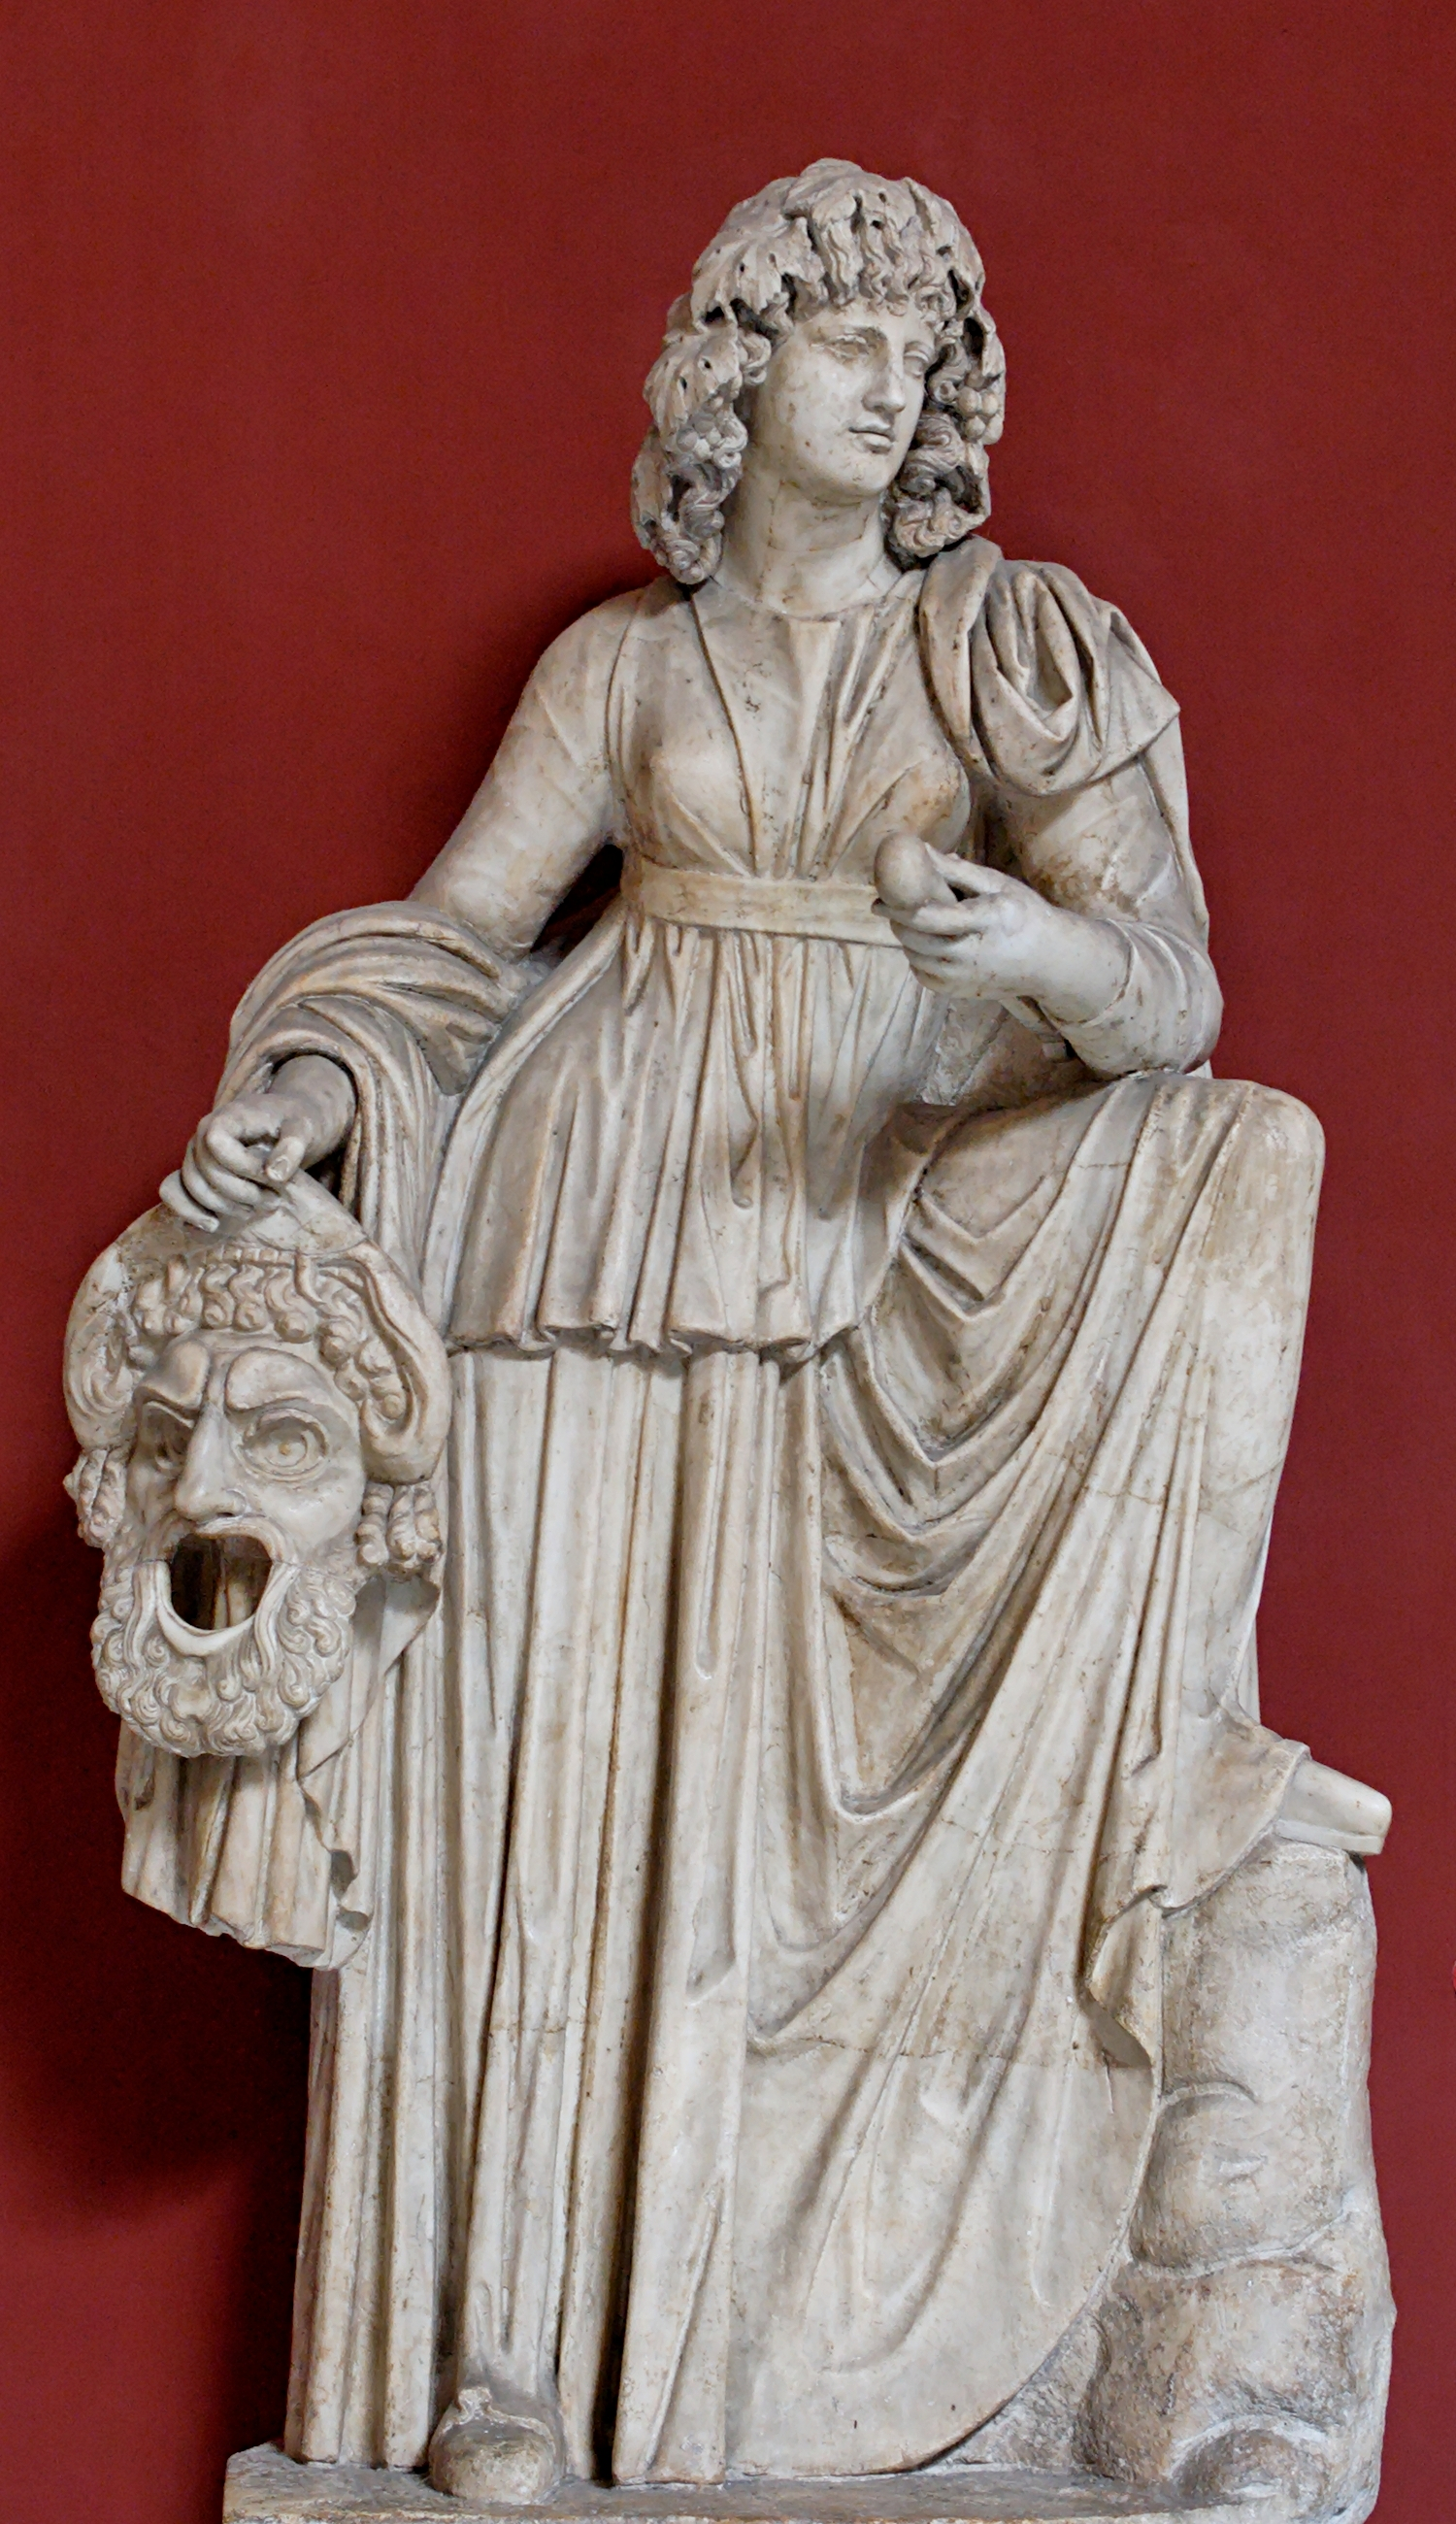 Melpomene (mitologia)														Oh no, there's been an error